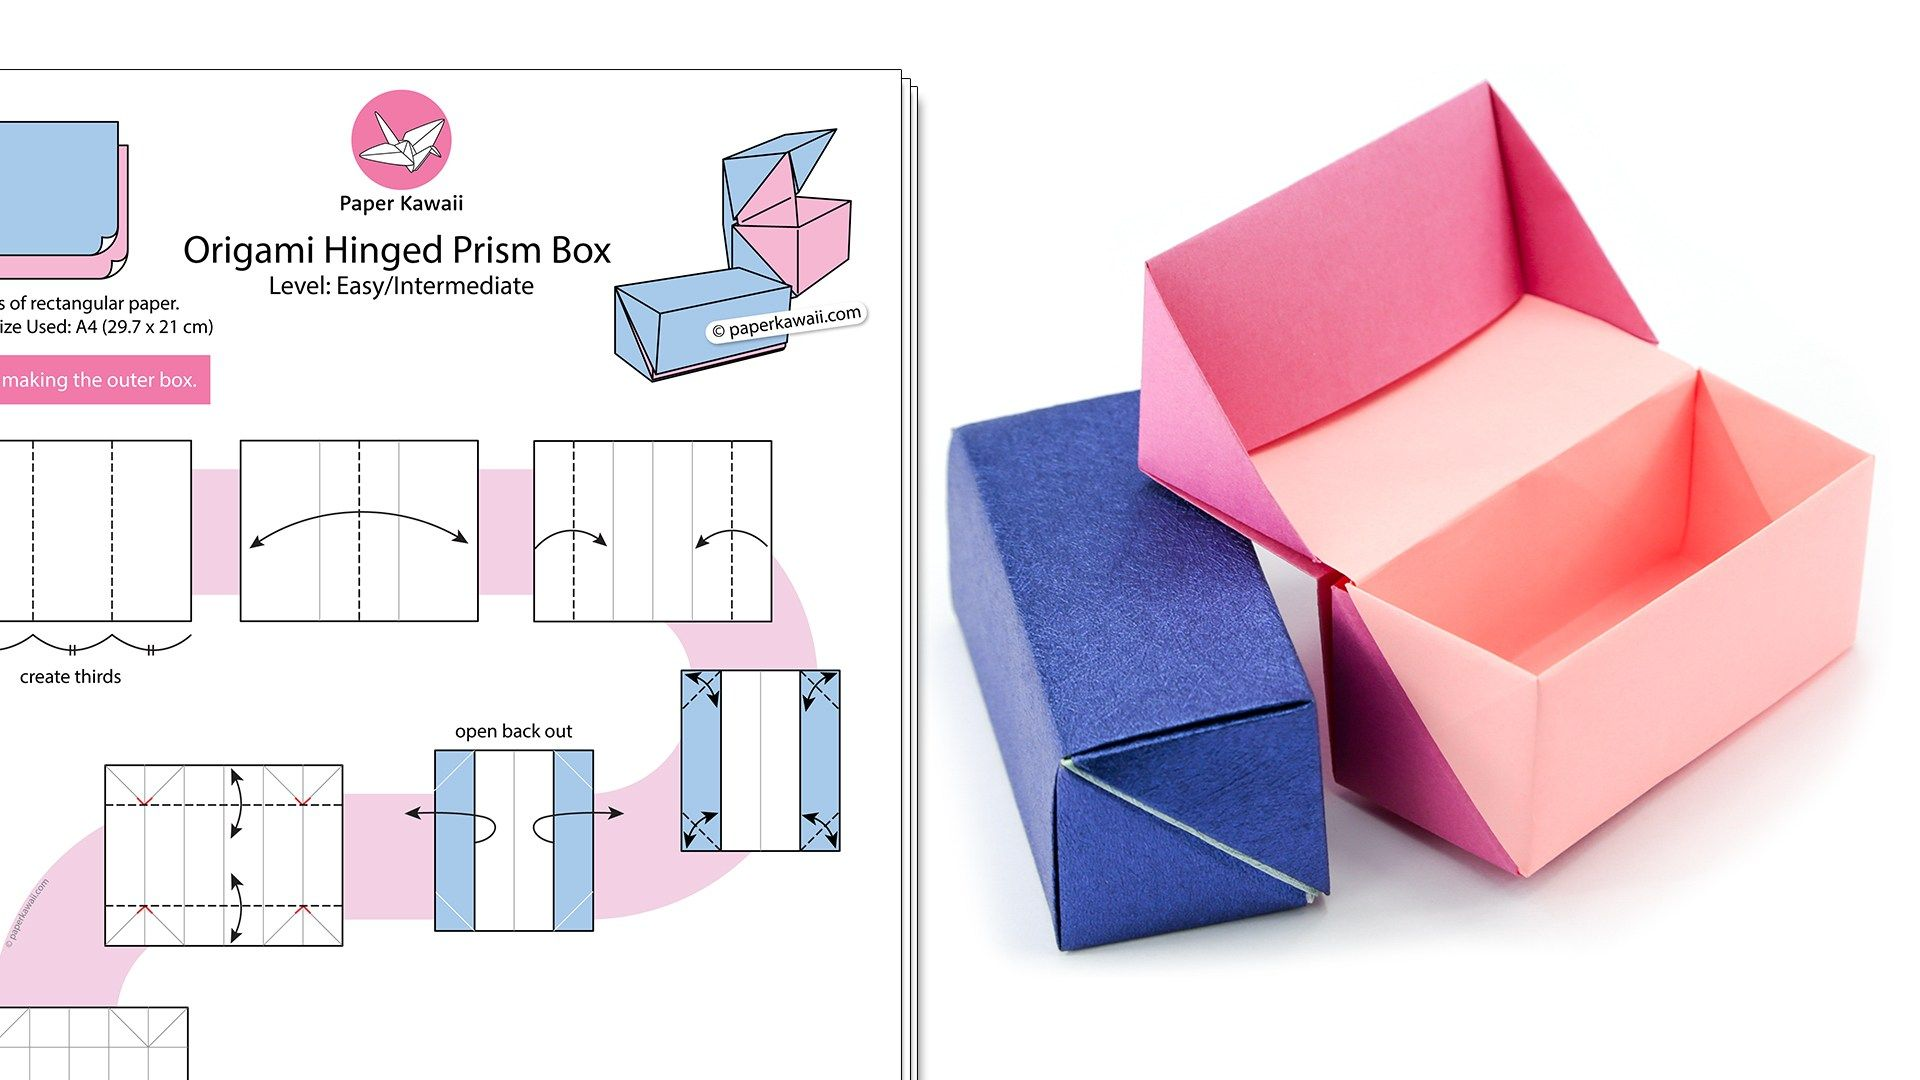 Origami Hinged Prism Gift Box Diagram Paper Kawaii Shop Origami Box Easy Origami Diagrams Origami Easy